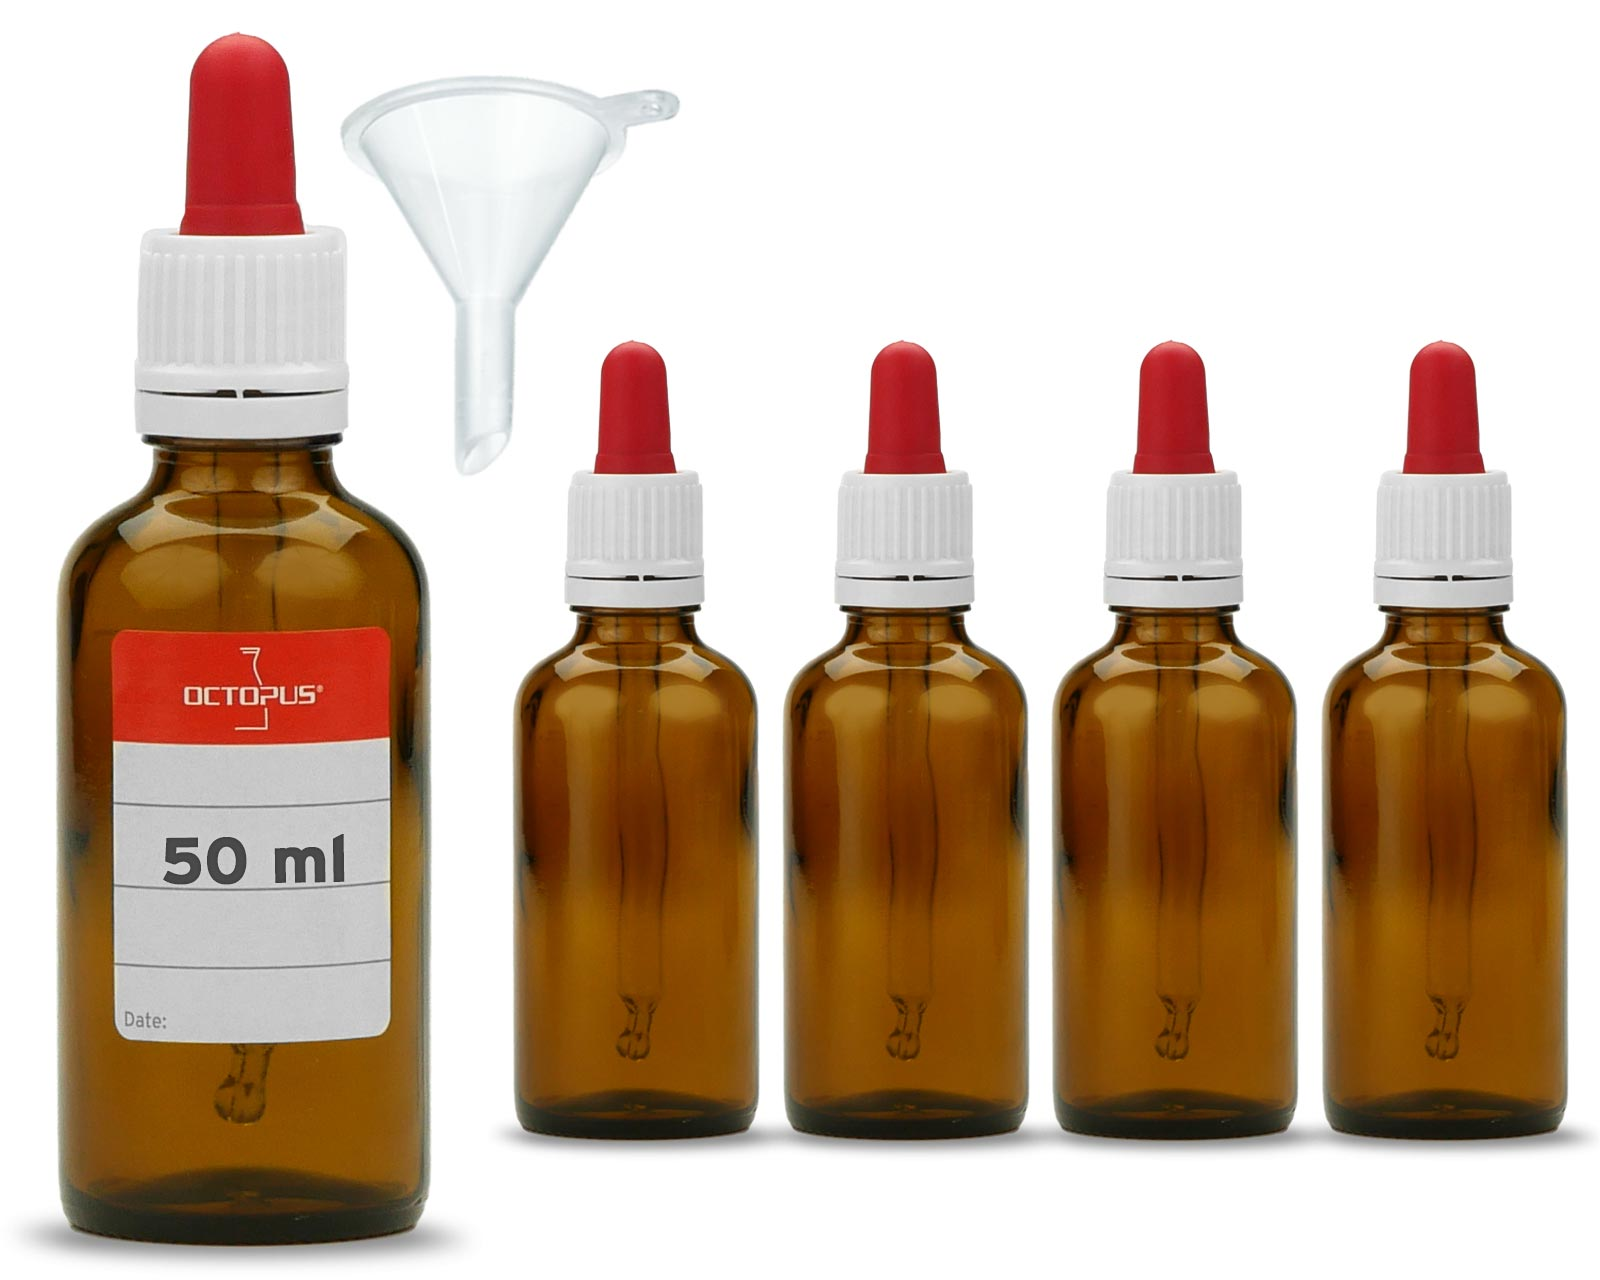 5 x 50 ml Brown glas bottles with glass pipette